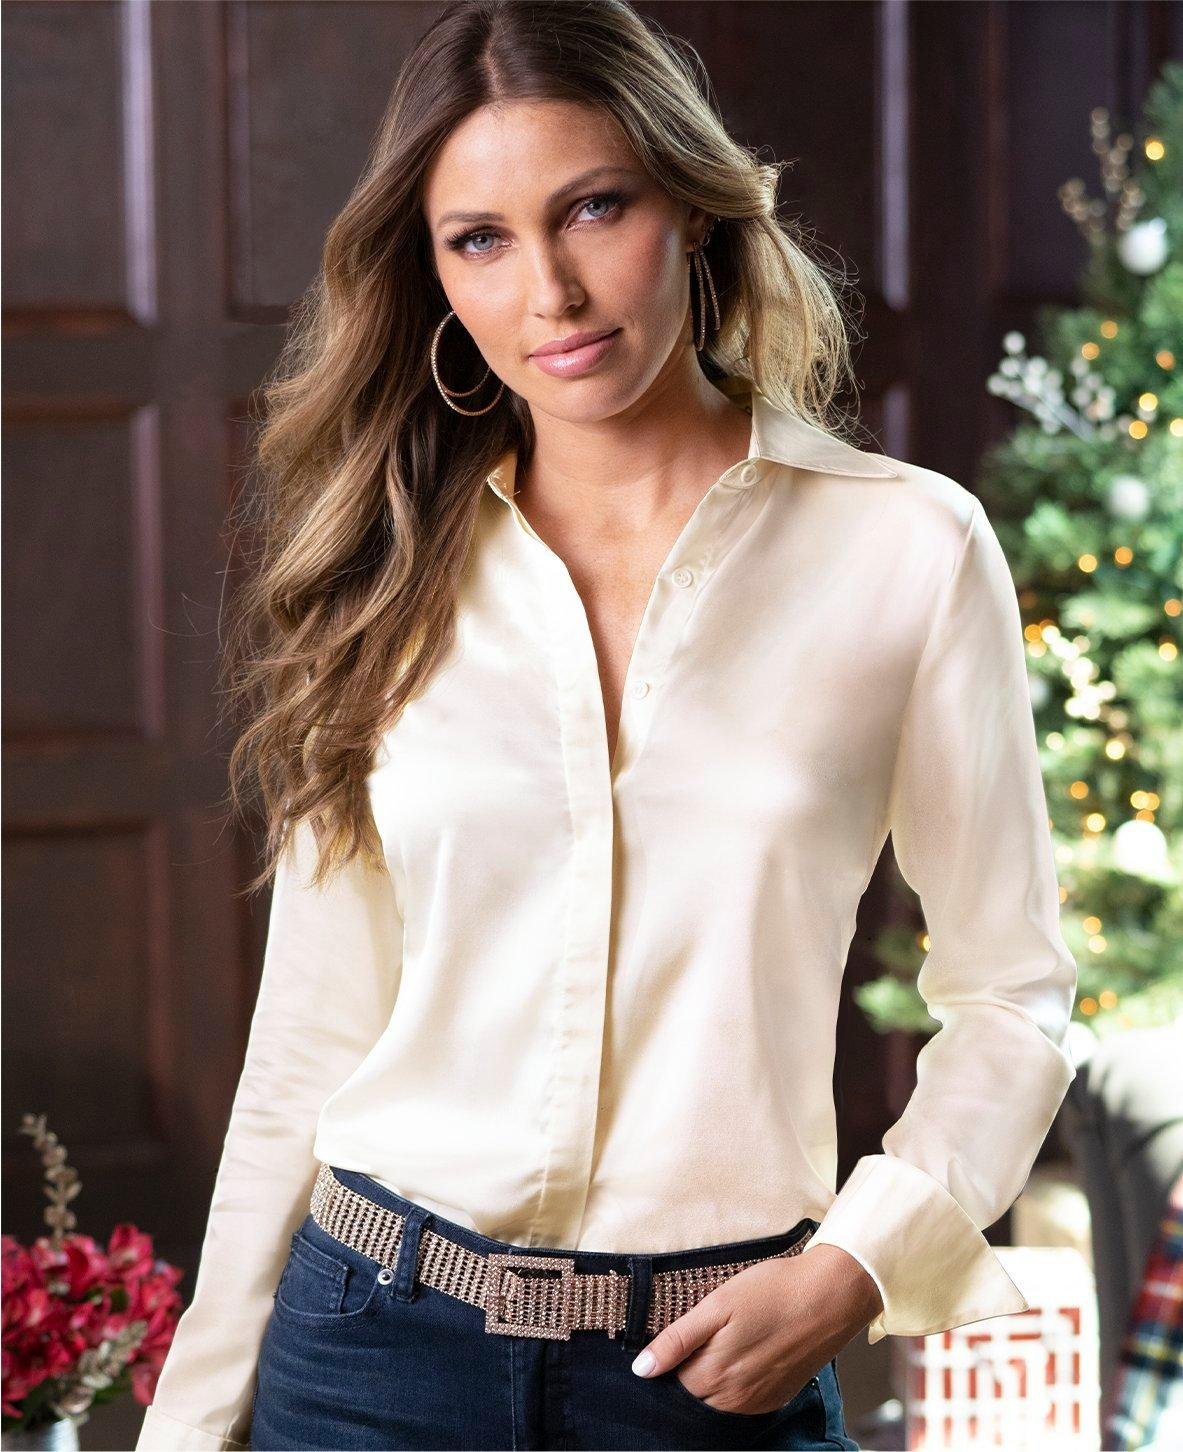 model wearing a cream colored button-up long sleeve blouse.